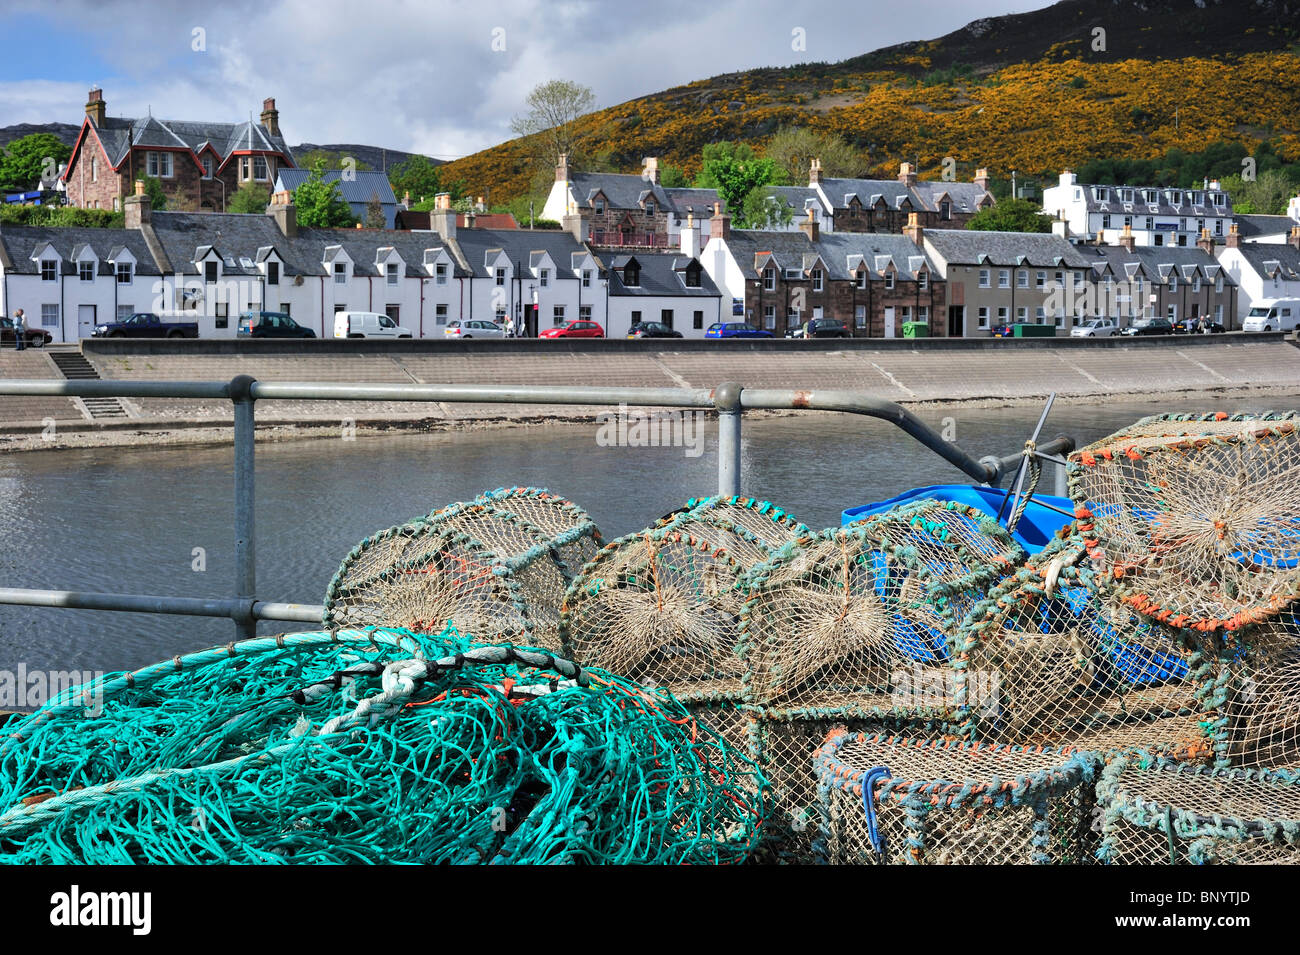 Stacked lobster creels / traps in the Ullapool harbour, Highlands, Scotland, UK - Stock Image